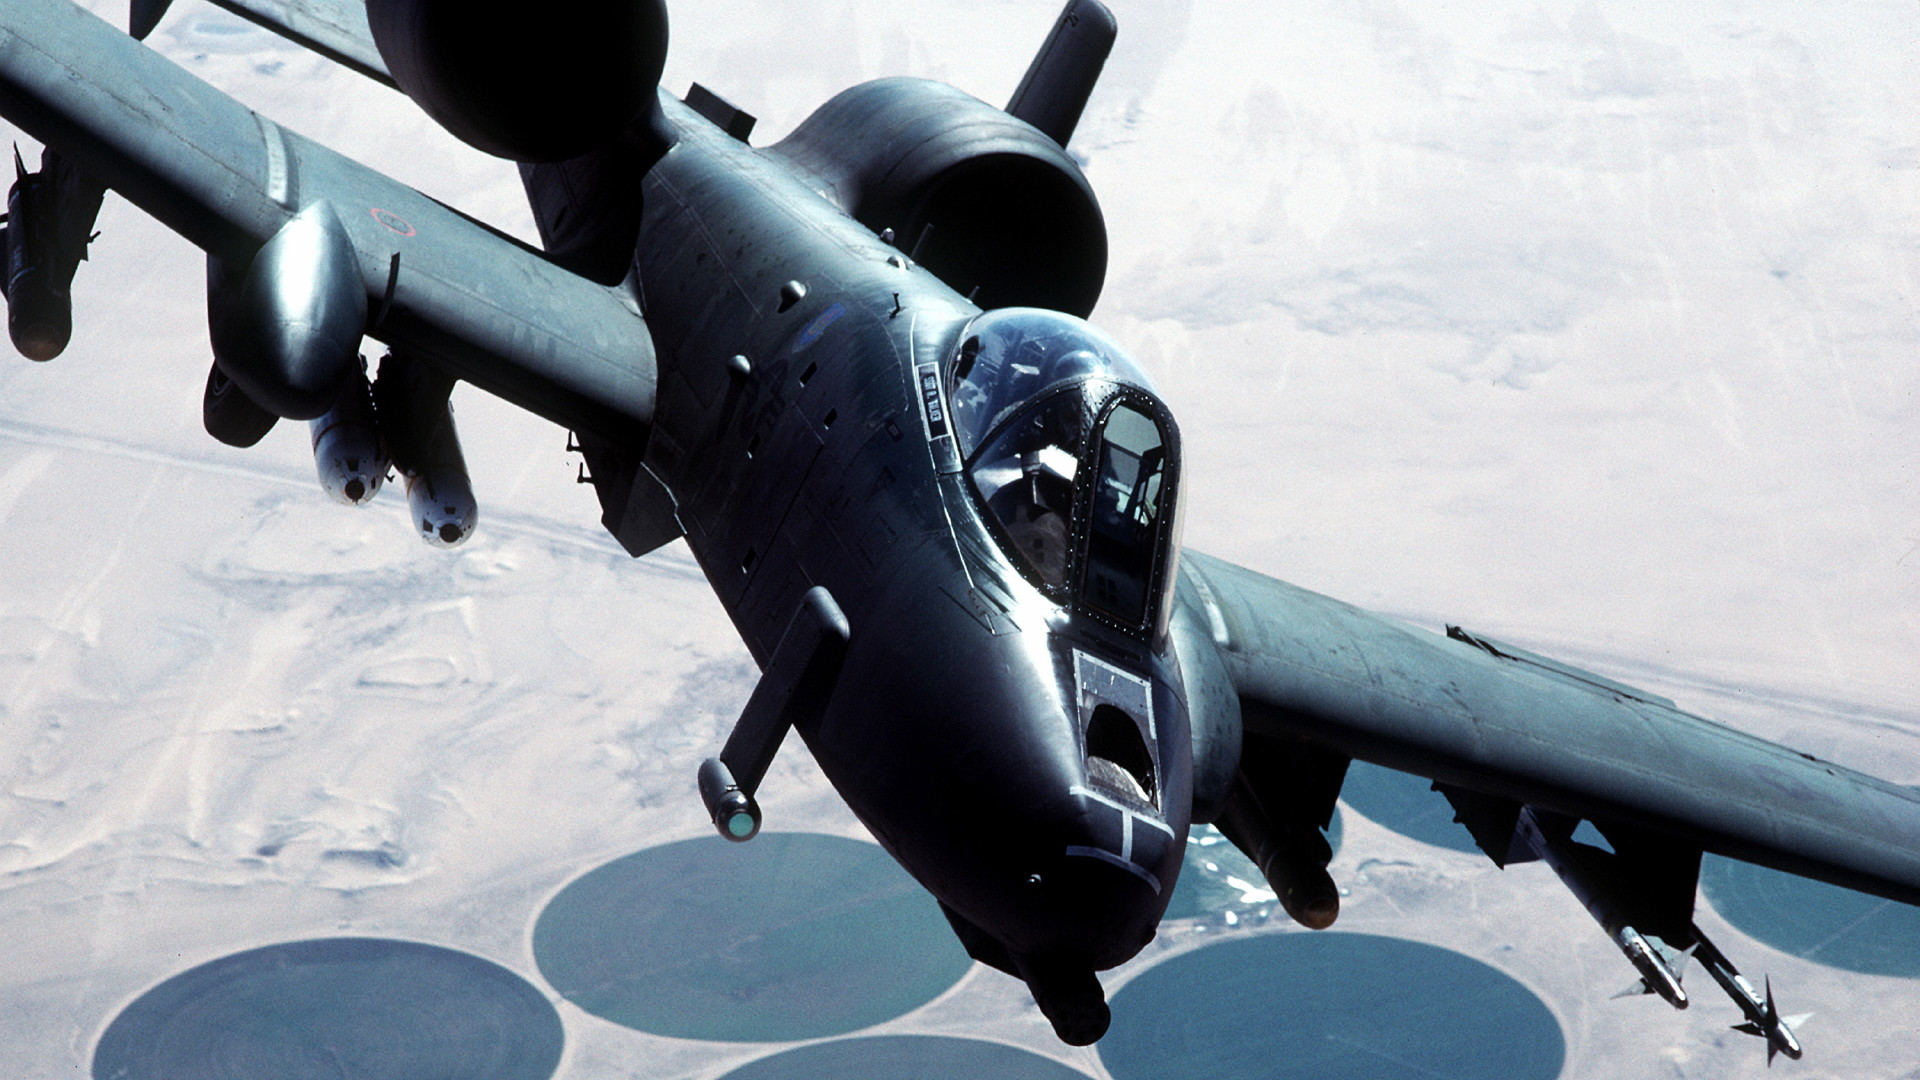 ... 10 Thunderbolt II Military A-10 Thunderbolt Warthog Airplane Wallpaper